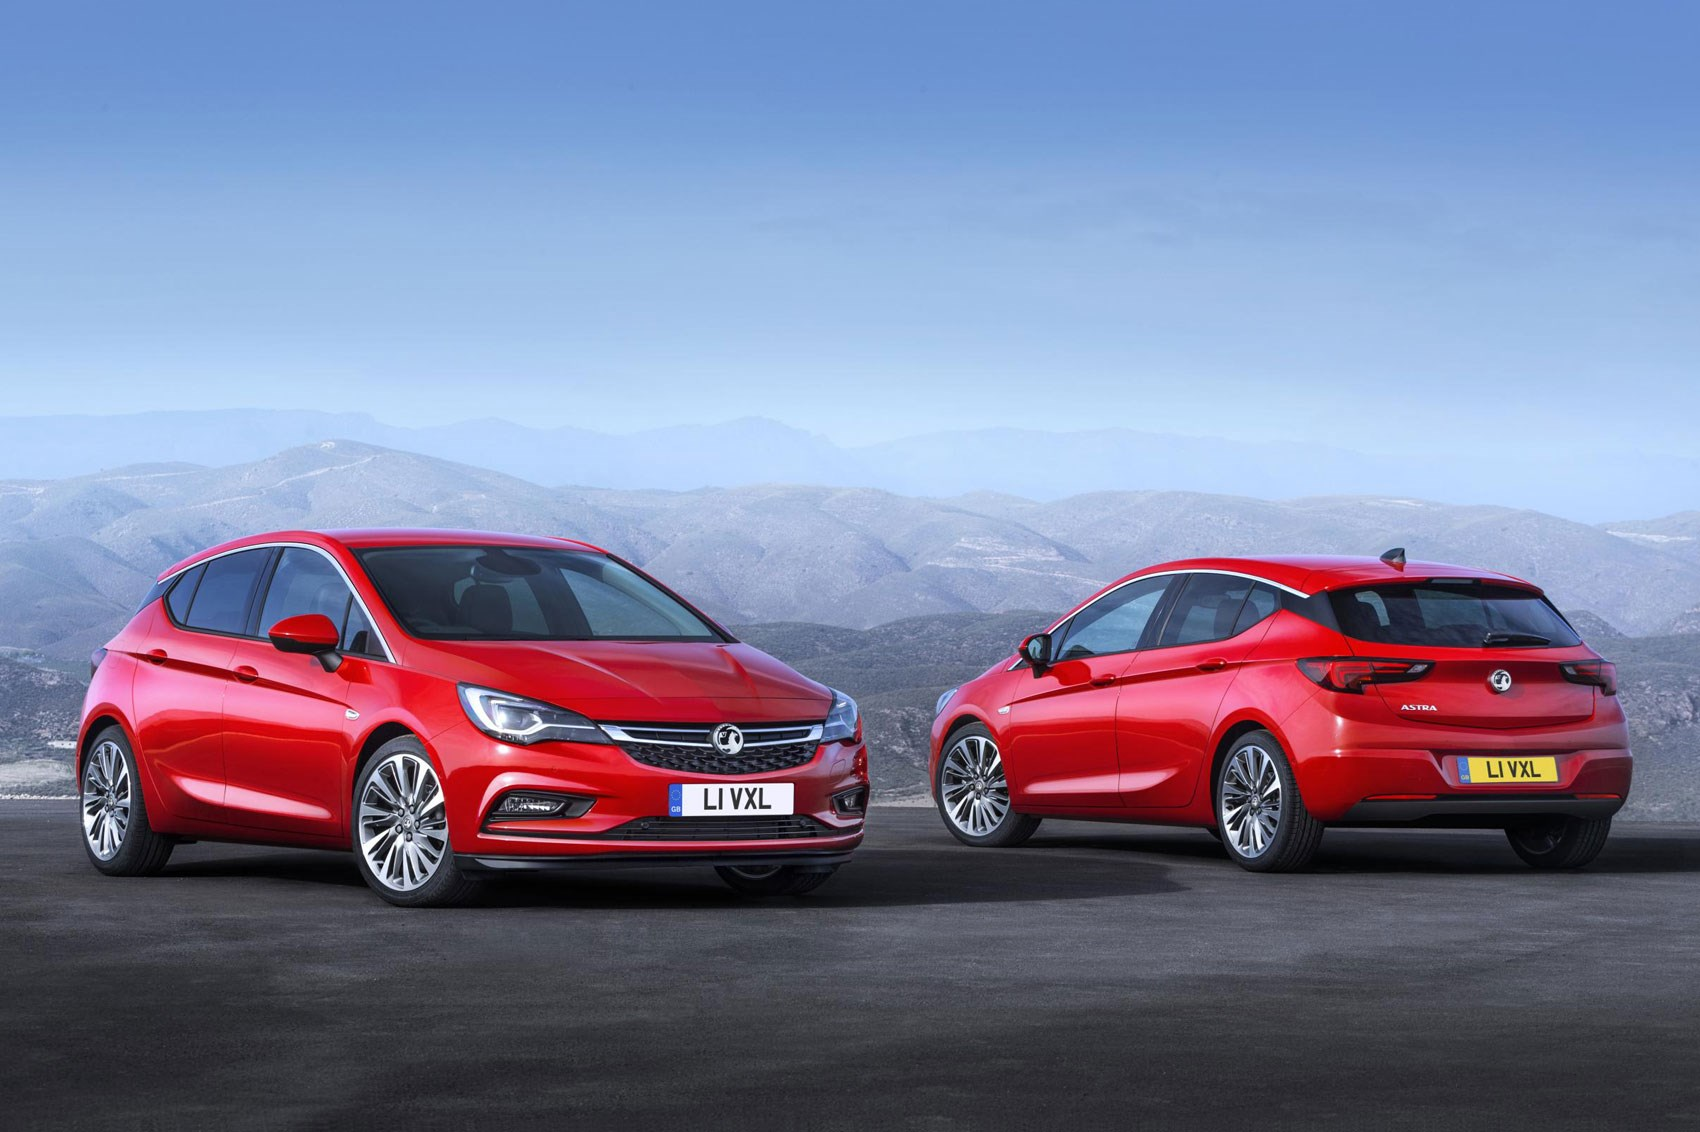 2015 Vauxhall Astra to start from £15k by CAR Magazine